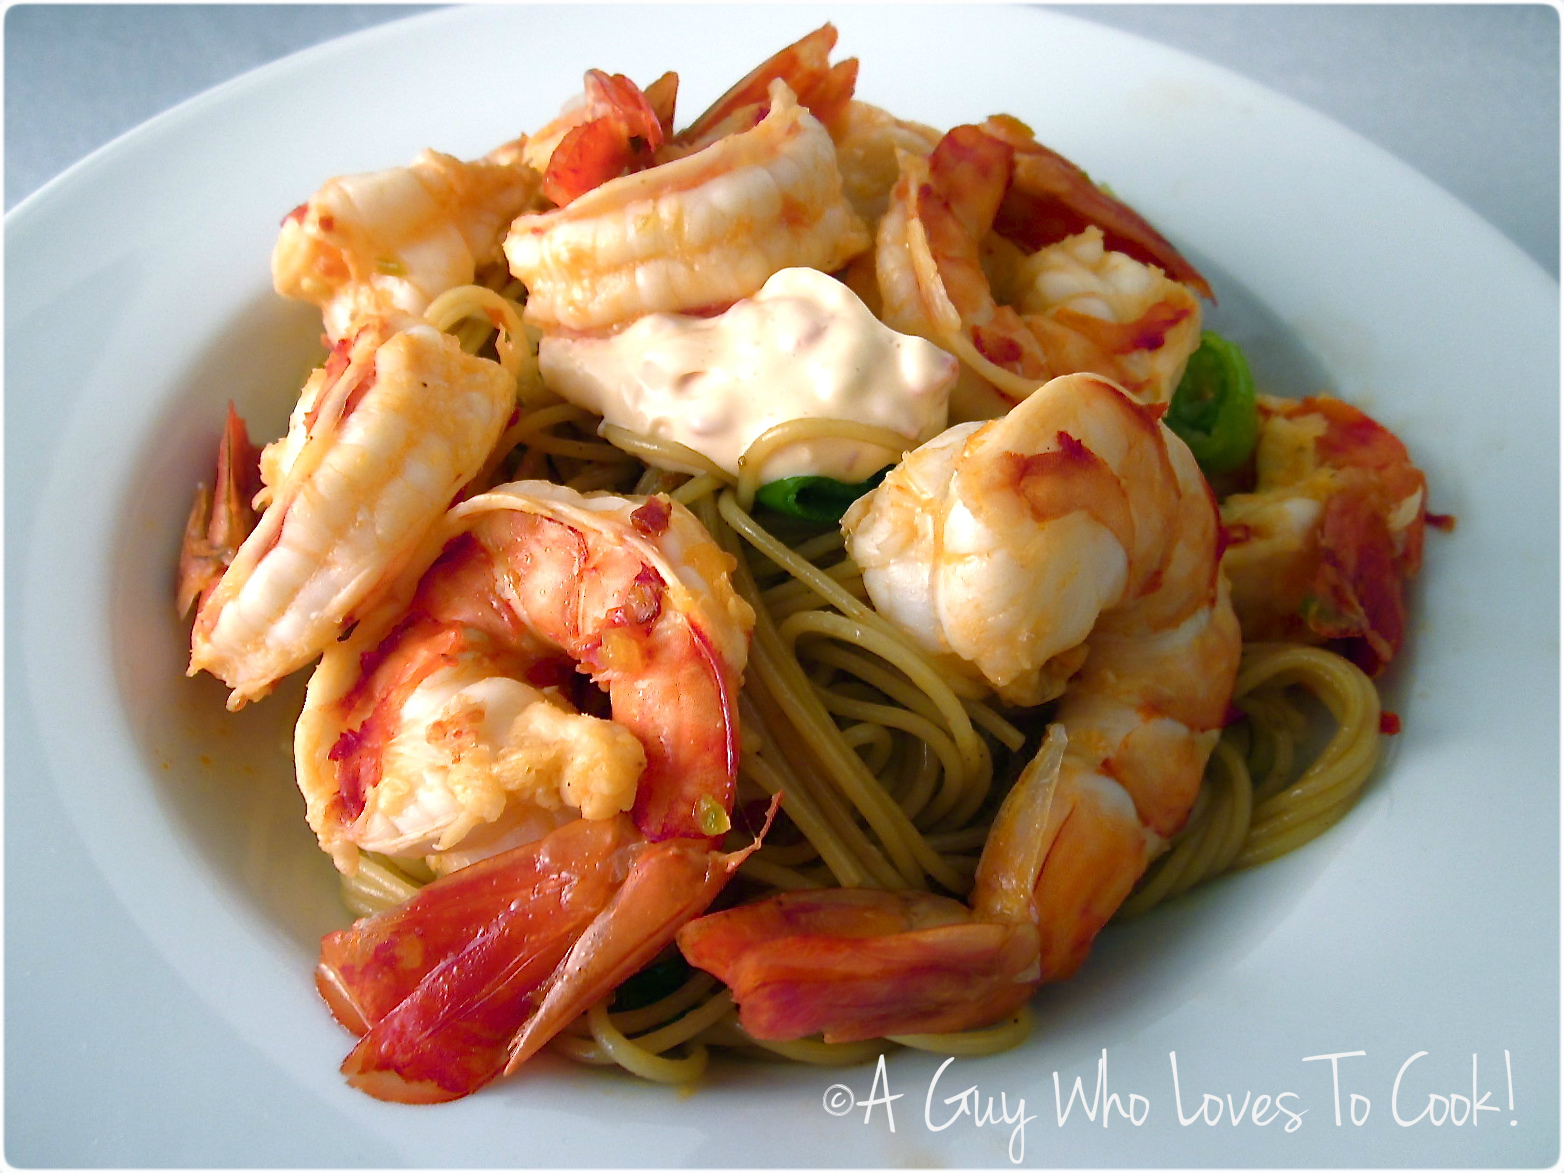 Fierce Garlic Prawns with Red Pepper Aioli